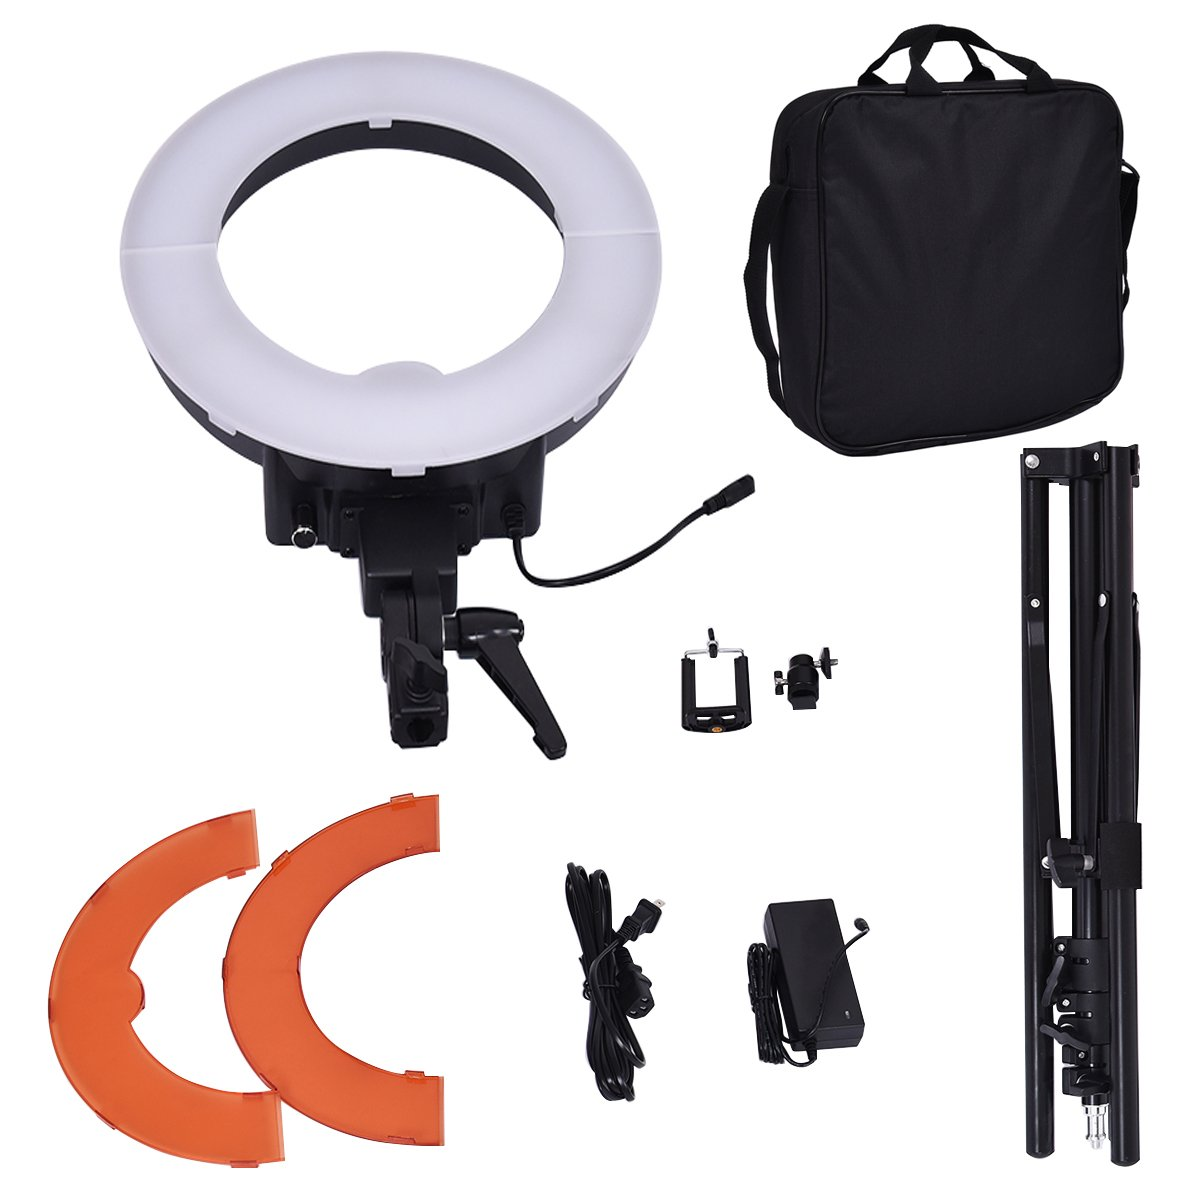 Safstar 12'' LED Ring Light Flash Video Light 35W 5600K Dimmable with Stand, Plastic Color Filter Set, Carrying Case for Smartphone, Youtube, Vine Self-Portrait Video Shooting by S AFSTAR